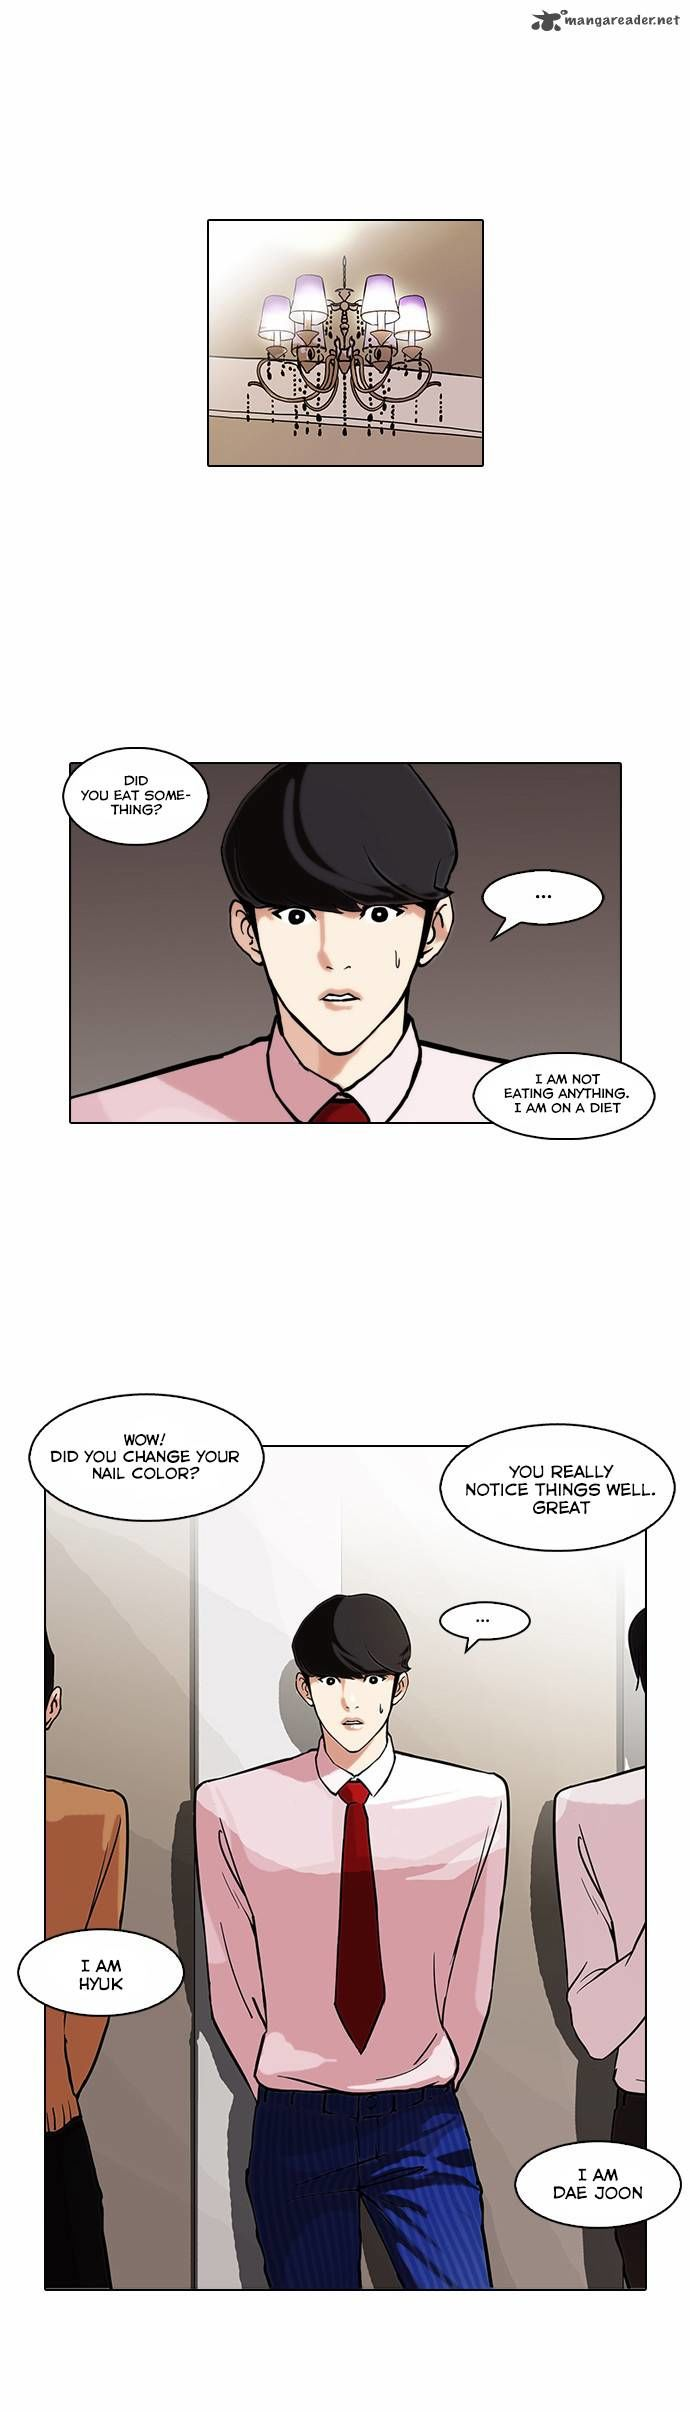 Lookism 76 Page 1